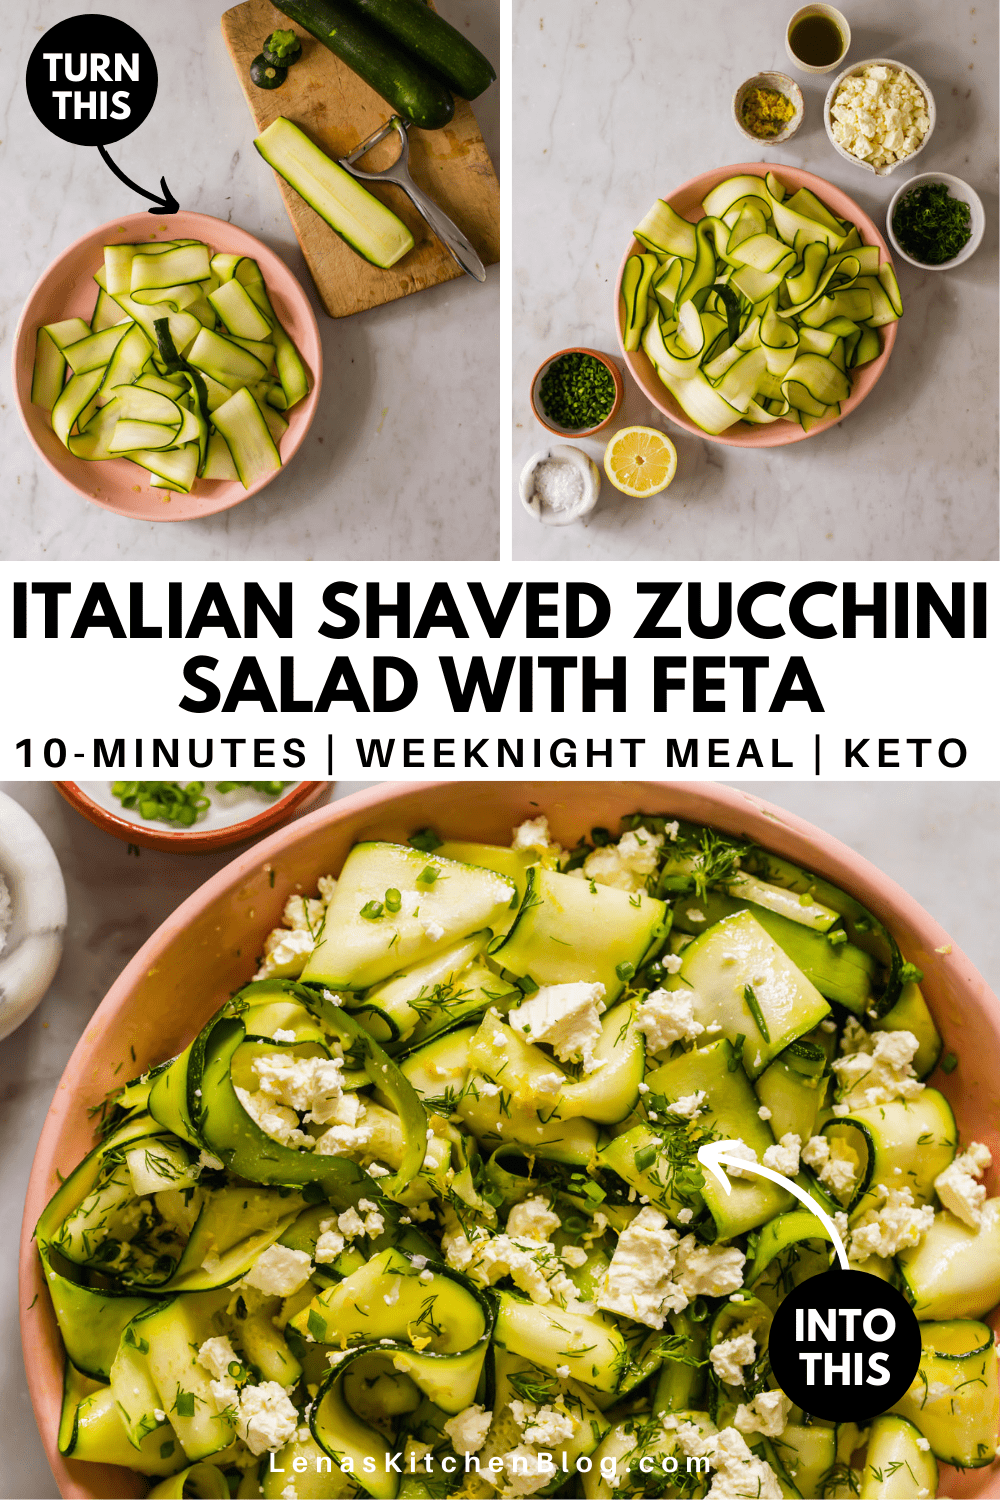 pinterest image of a pink bowl of zucchini ribbons topped with crumbled cheese and green herbs